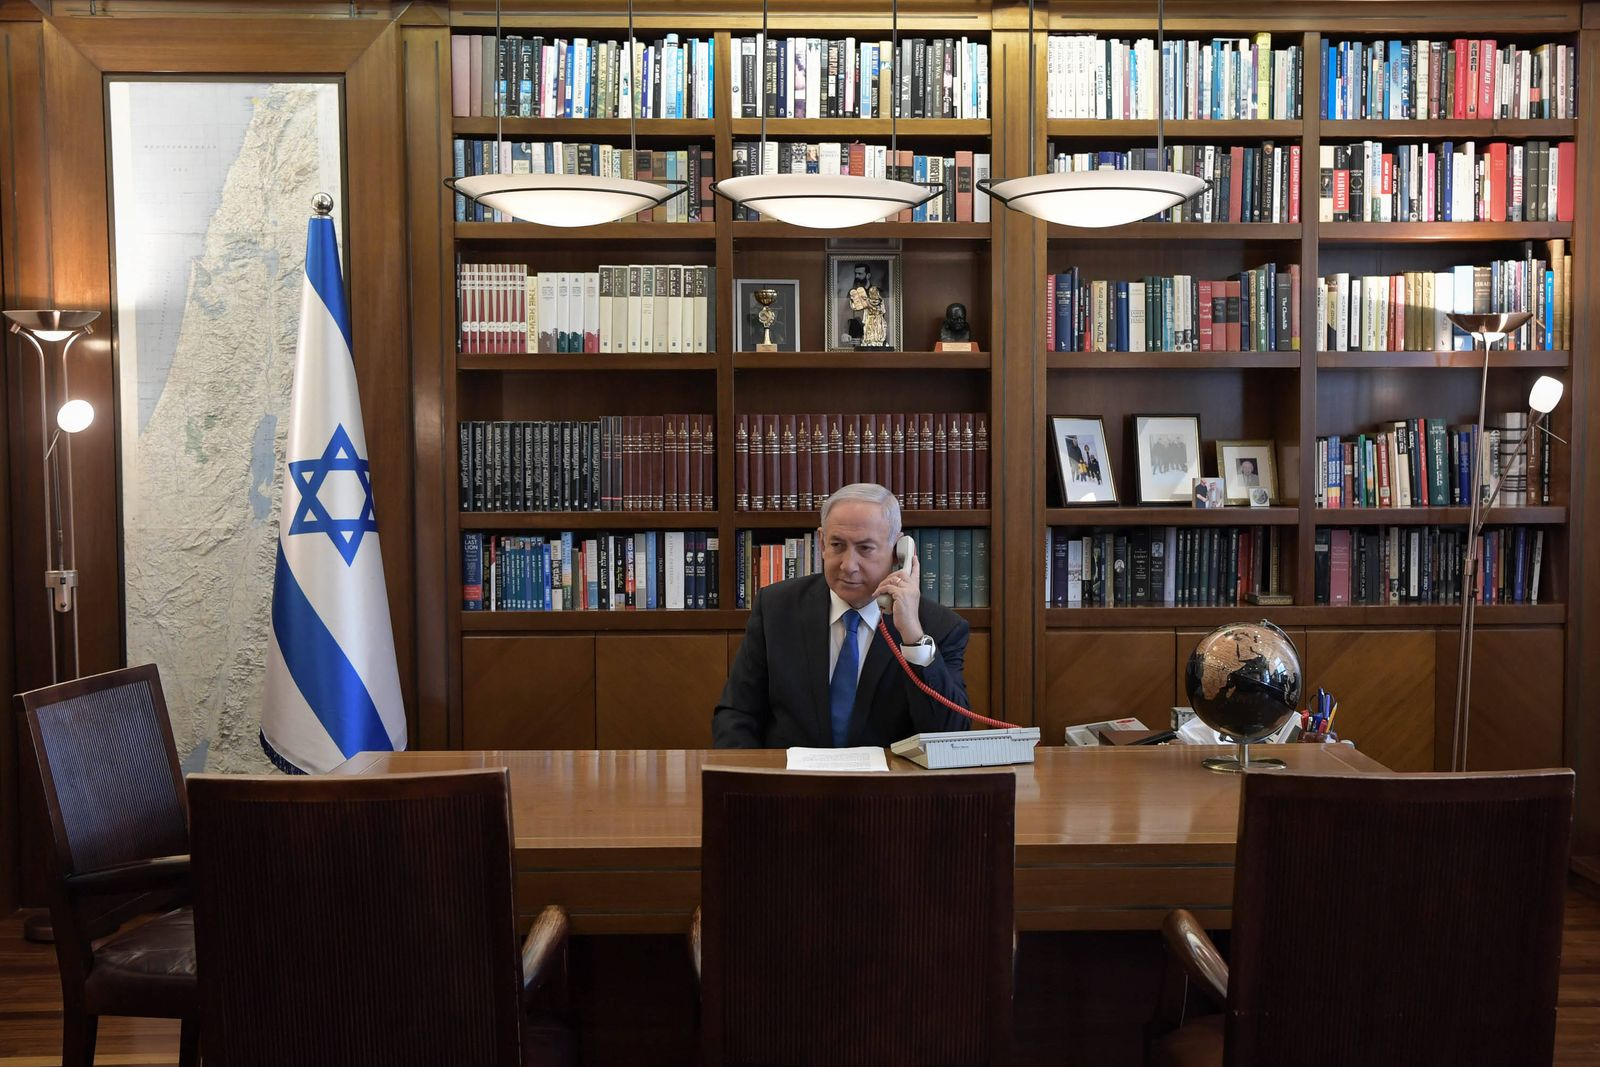 August 13, 2020, Jerusalem, Israel: Prime Minister Benjamin Netanyahu holds a conference call from his office with US P